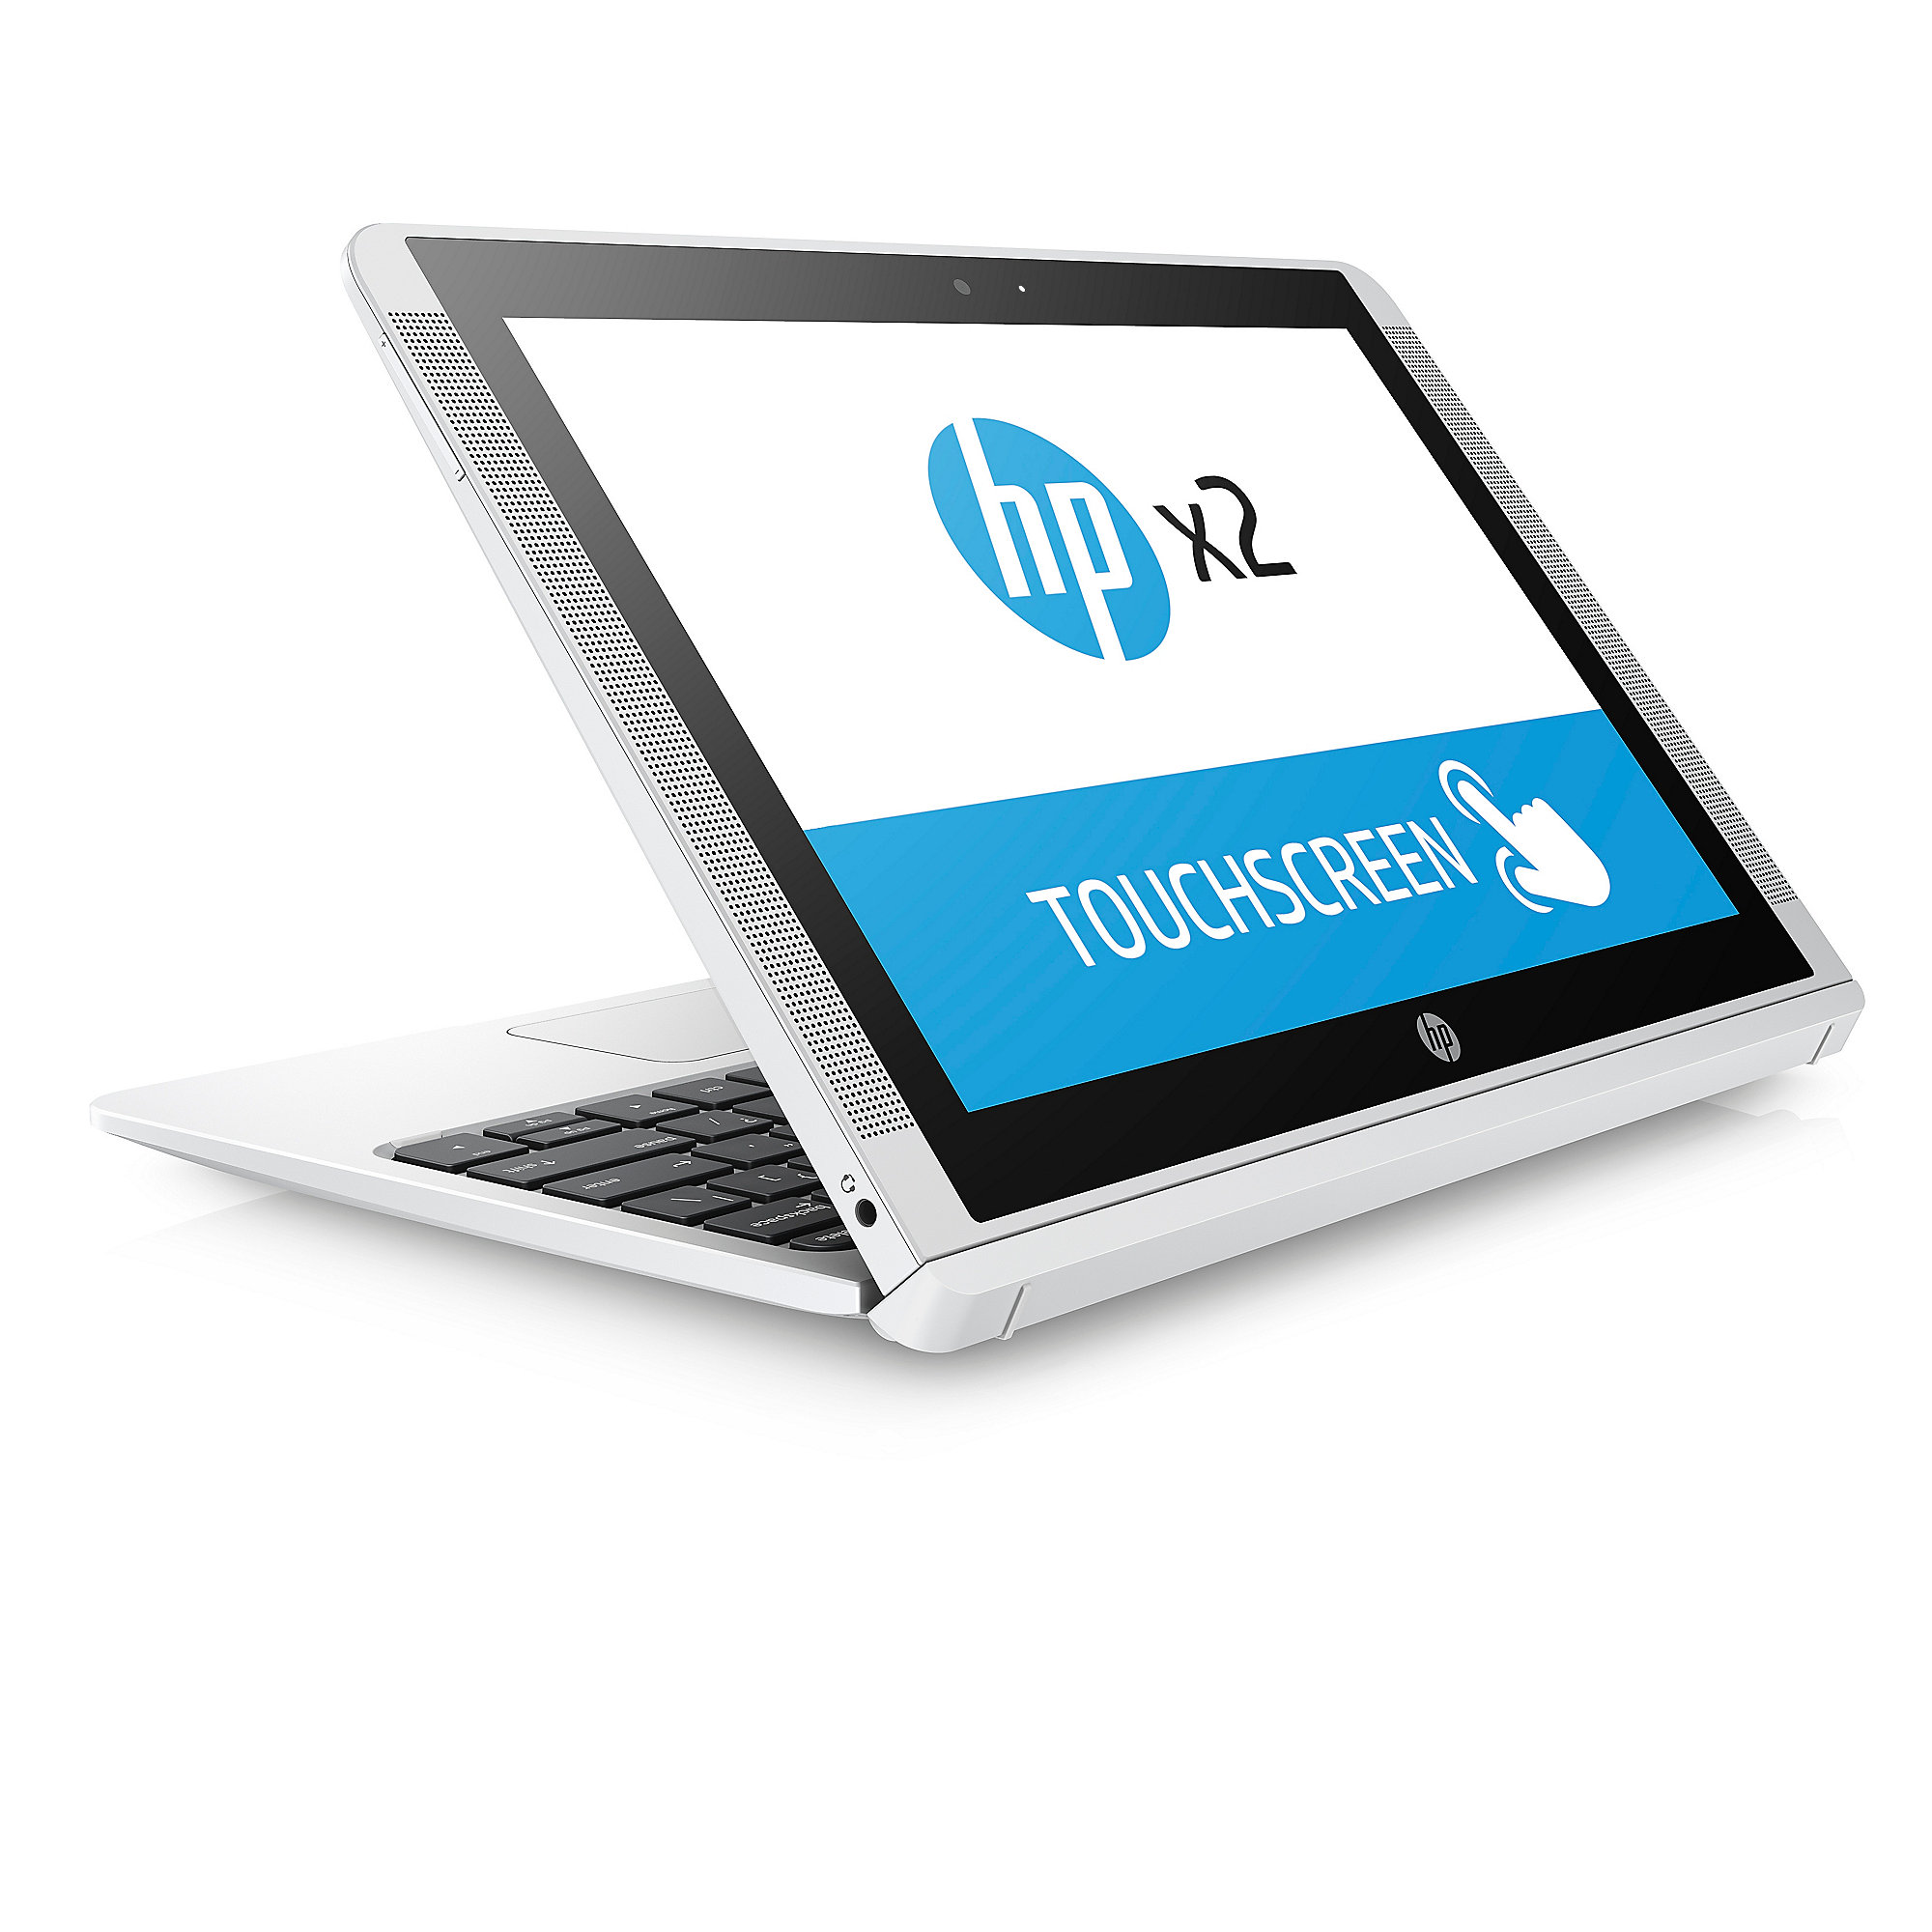 "HP x2 10-p000ng x5-Z8350 2GB/32GB 10,1"" HD 2in1 Touch Windows 10 weiss"